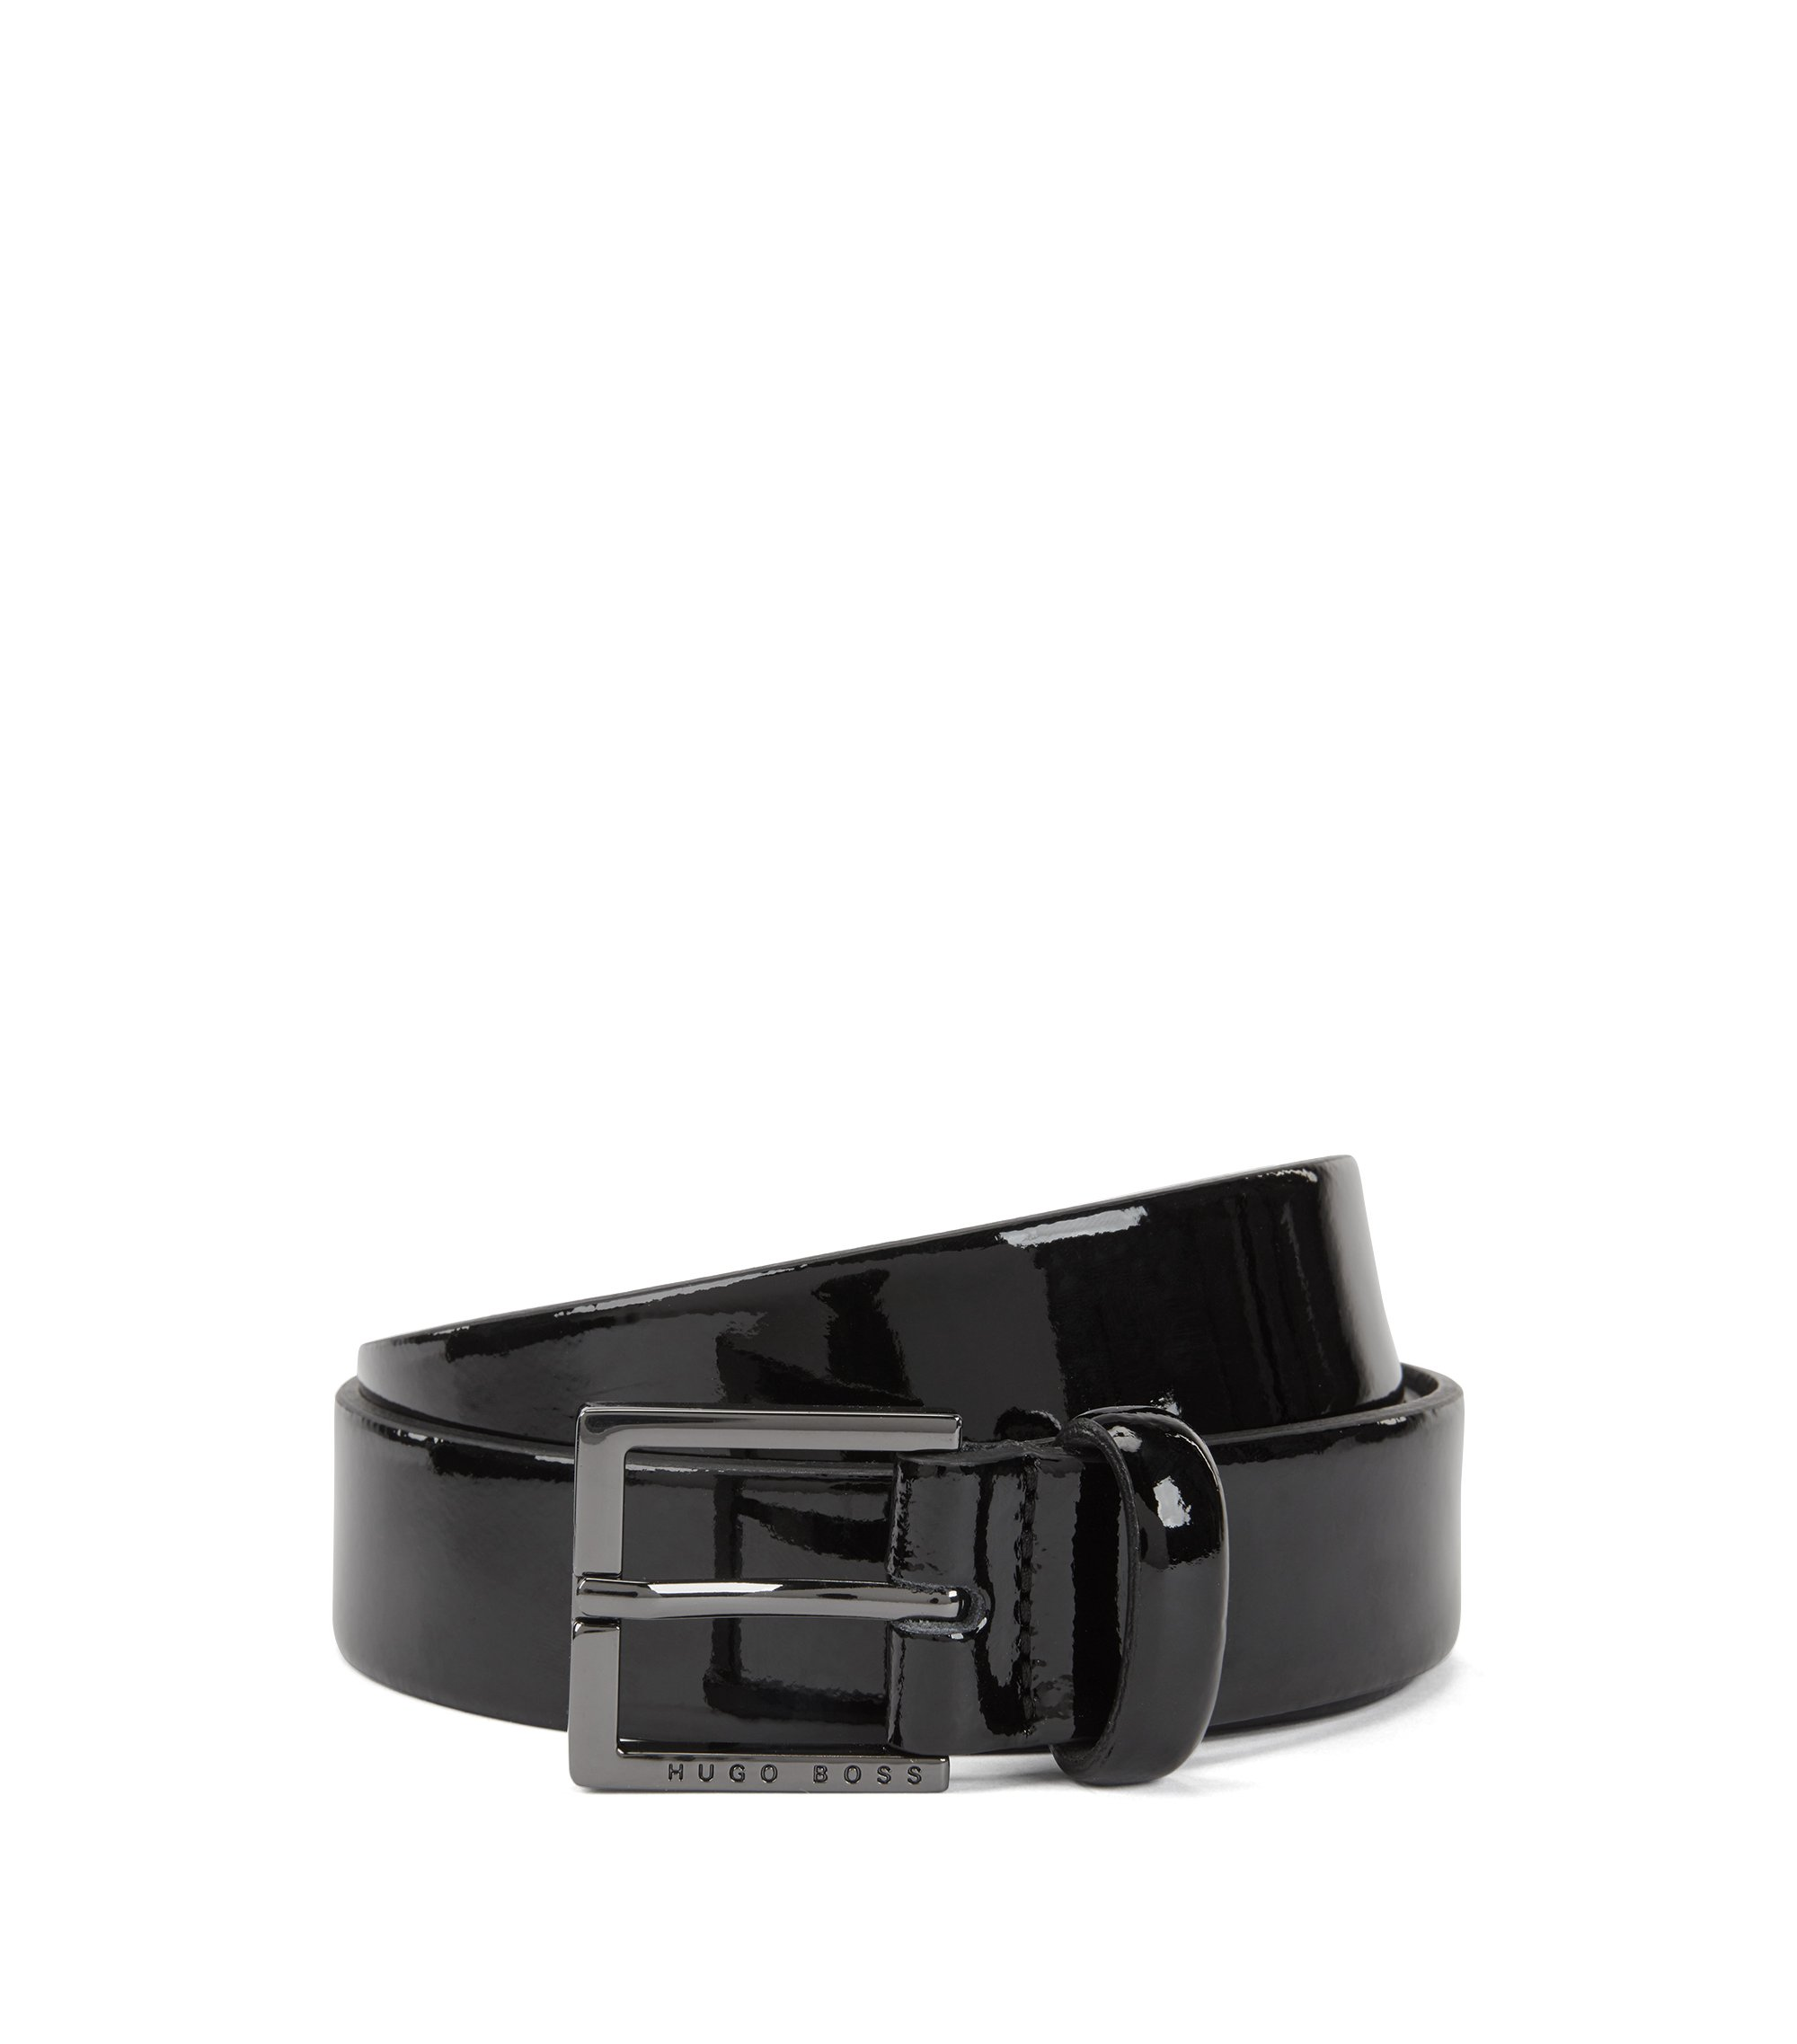 Patent-leather belt with polished gunmetal hardware, Black